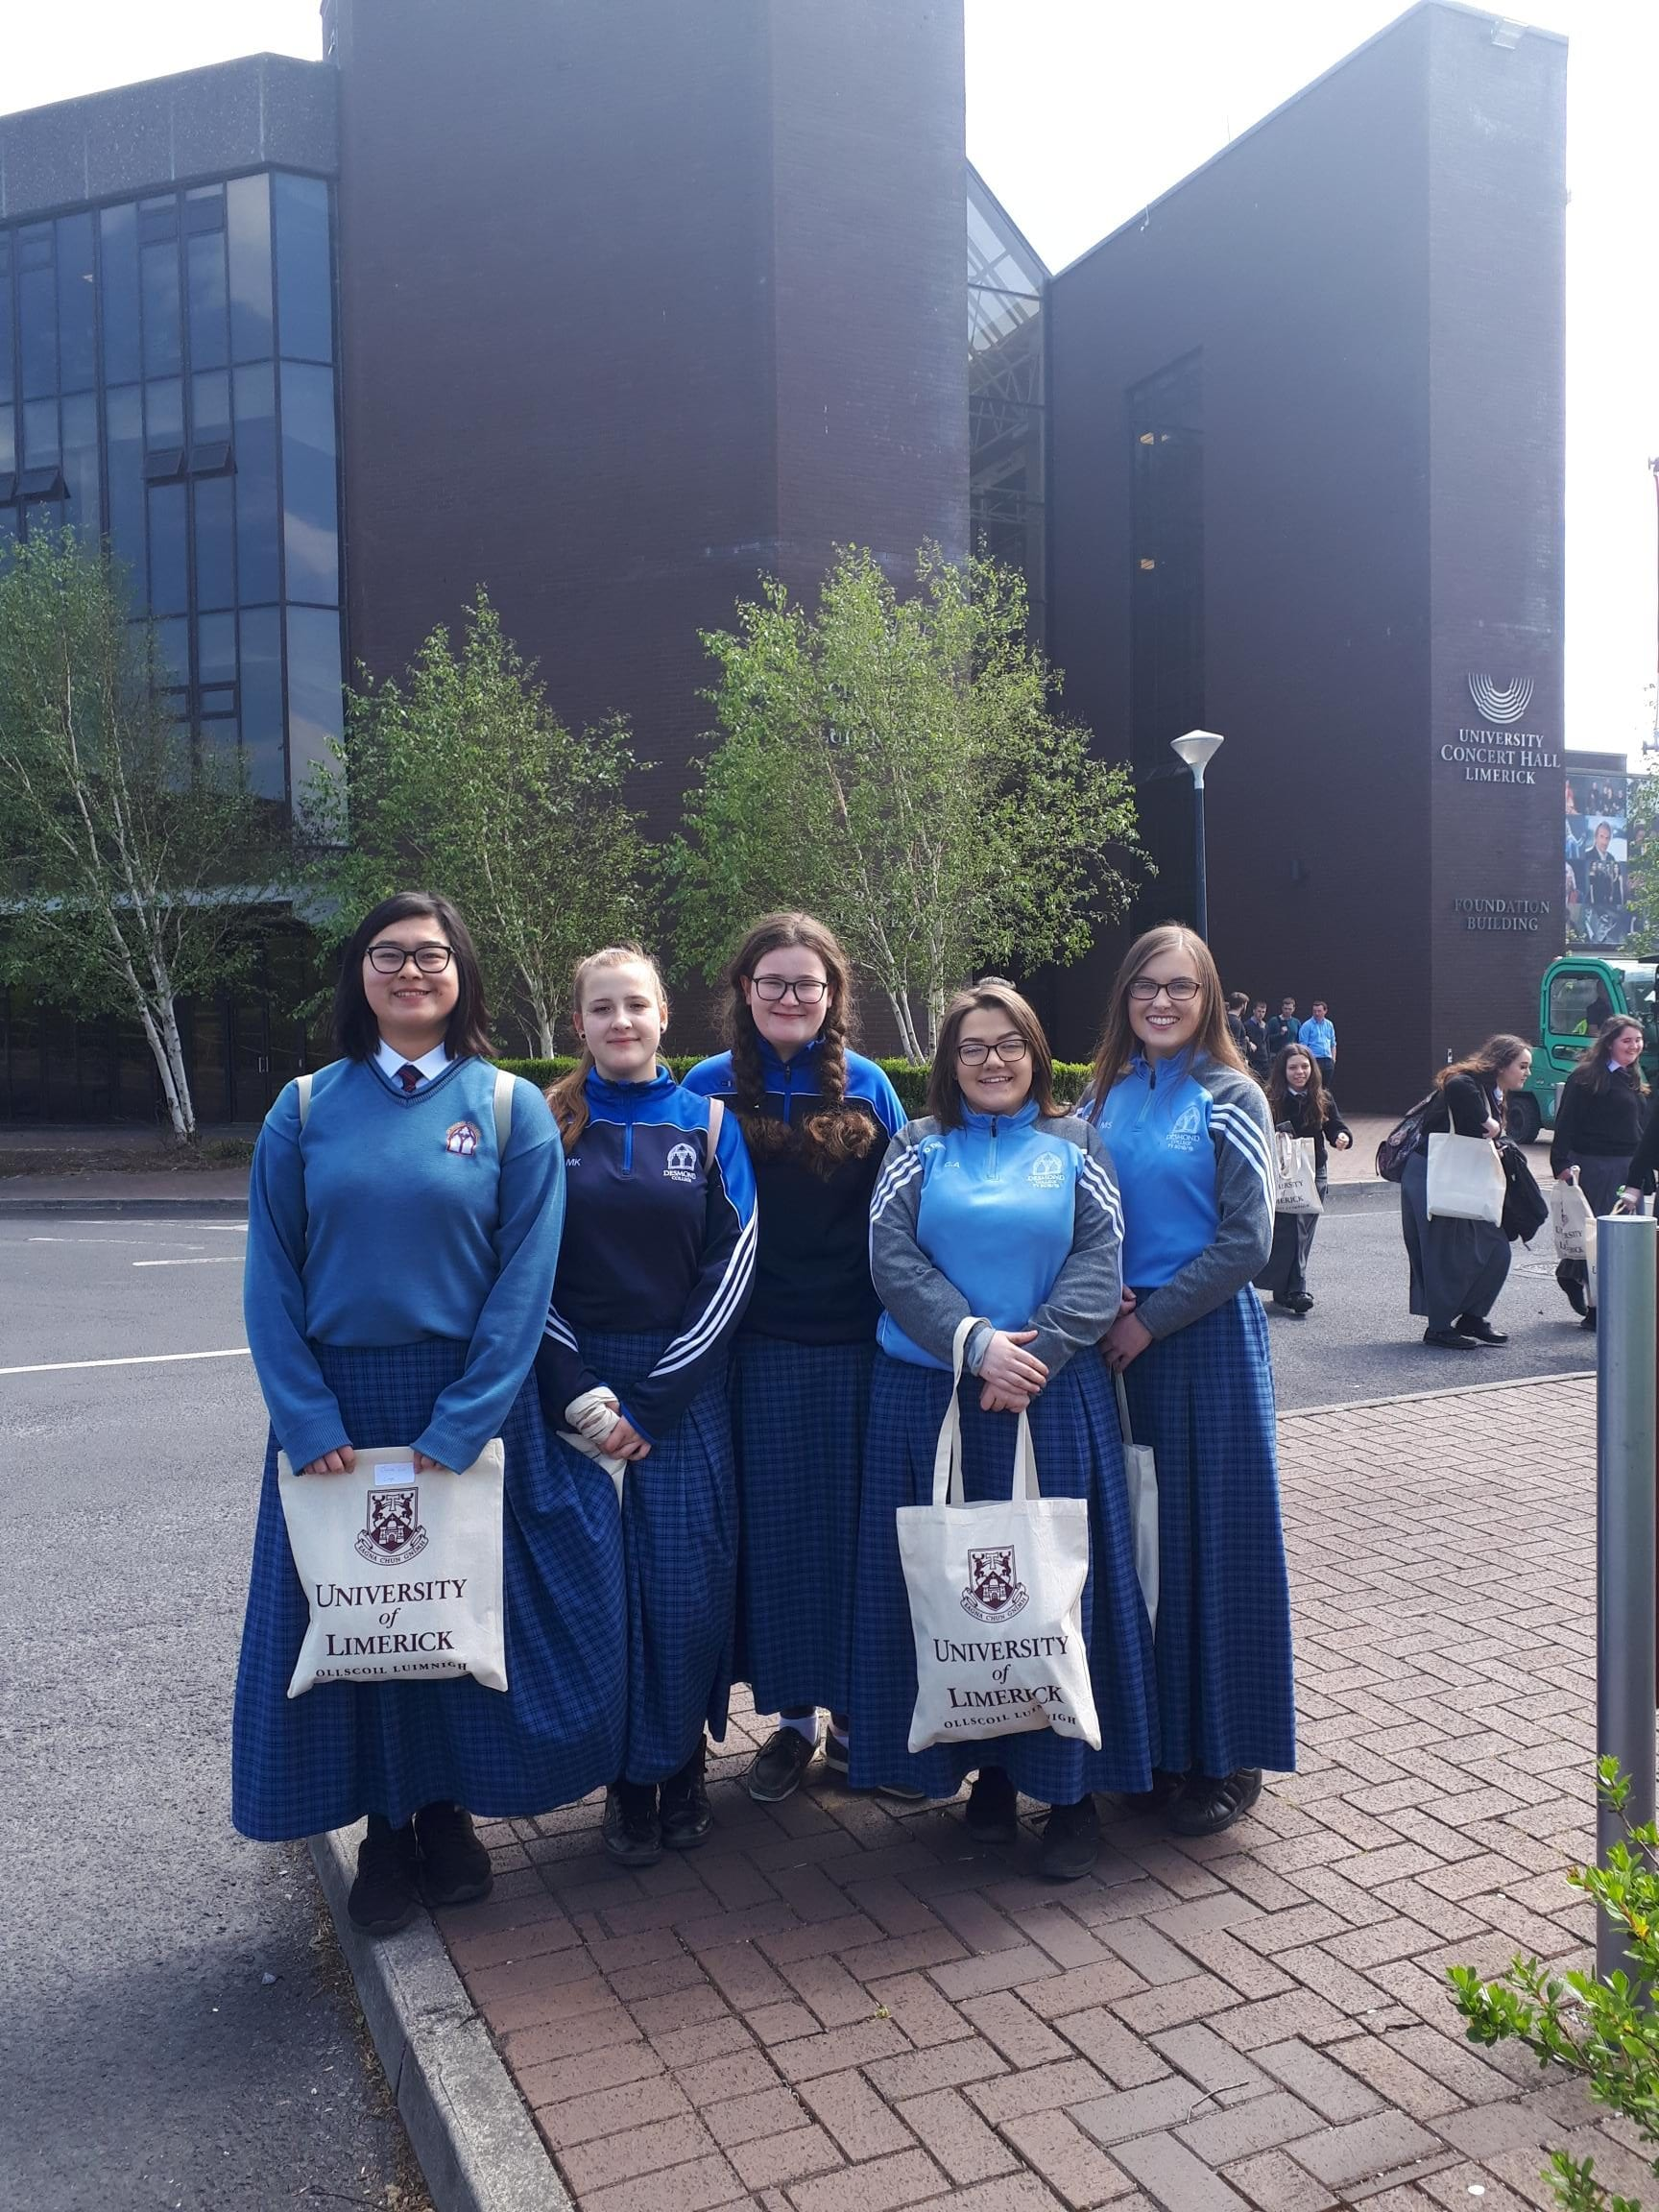 Joanne Lai, Marcelina Krzywdainska, Alanis Leen, Chloe Aherne and Mary Sexton who took part in the Teacher Taster Programme at the University of Limerick